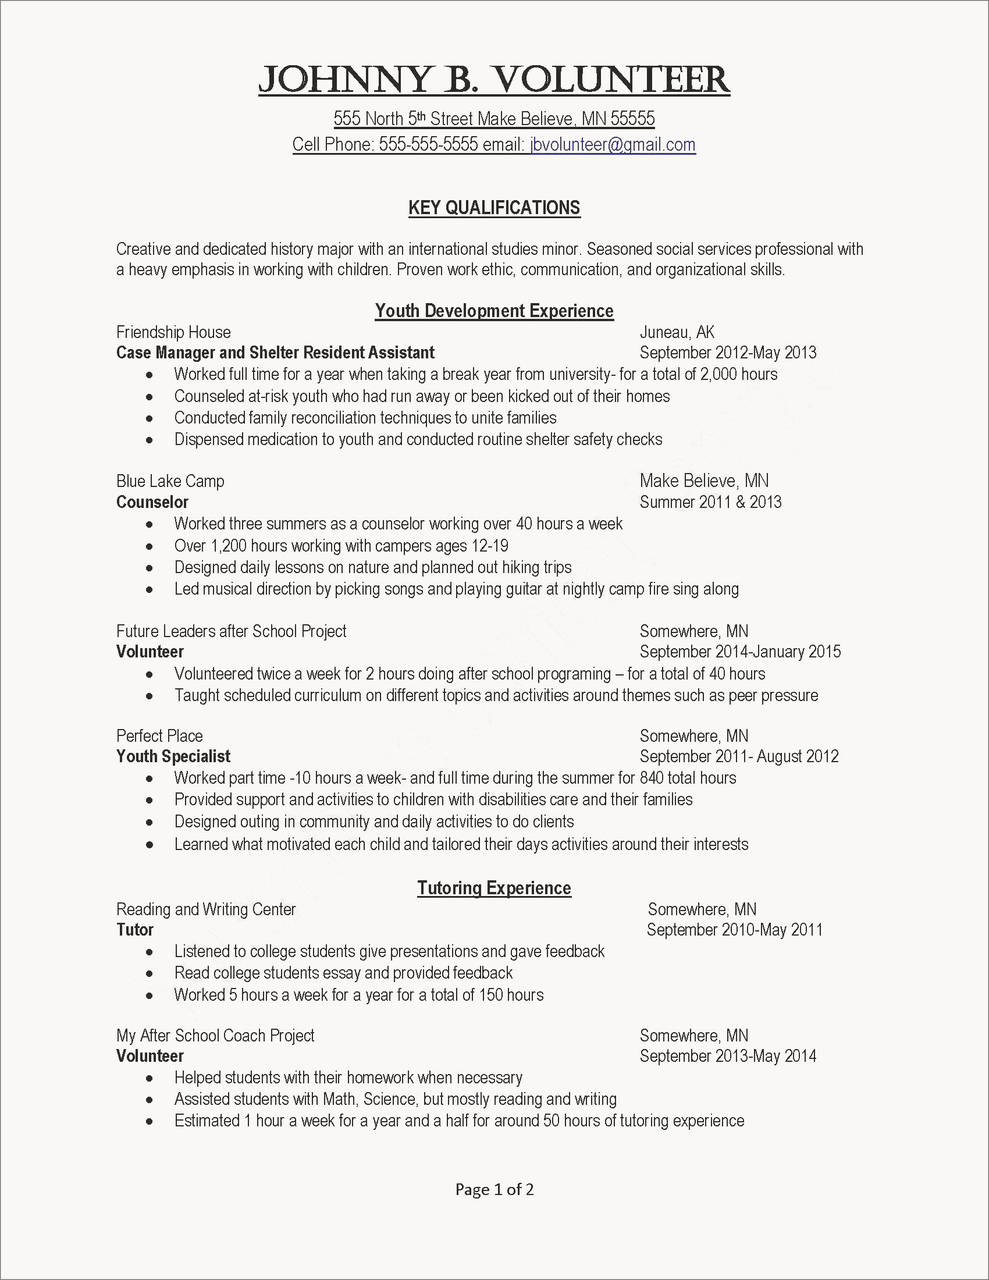 Child Care Provider Skills for Resume - Perfect Resume Example Luxury Resumes Skills Examples Resume